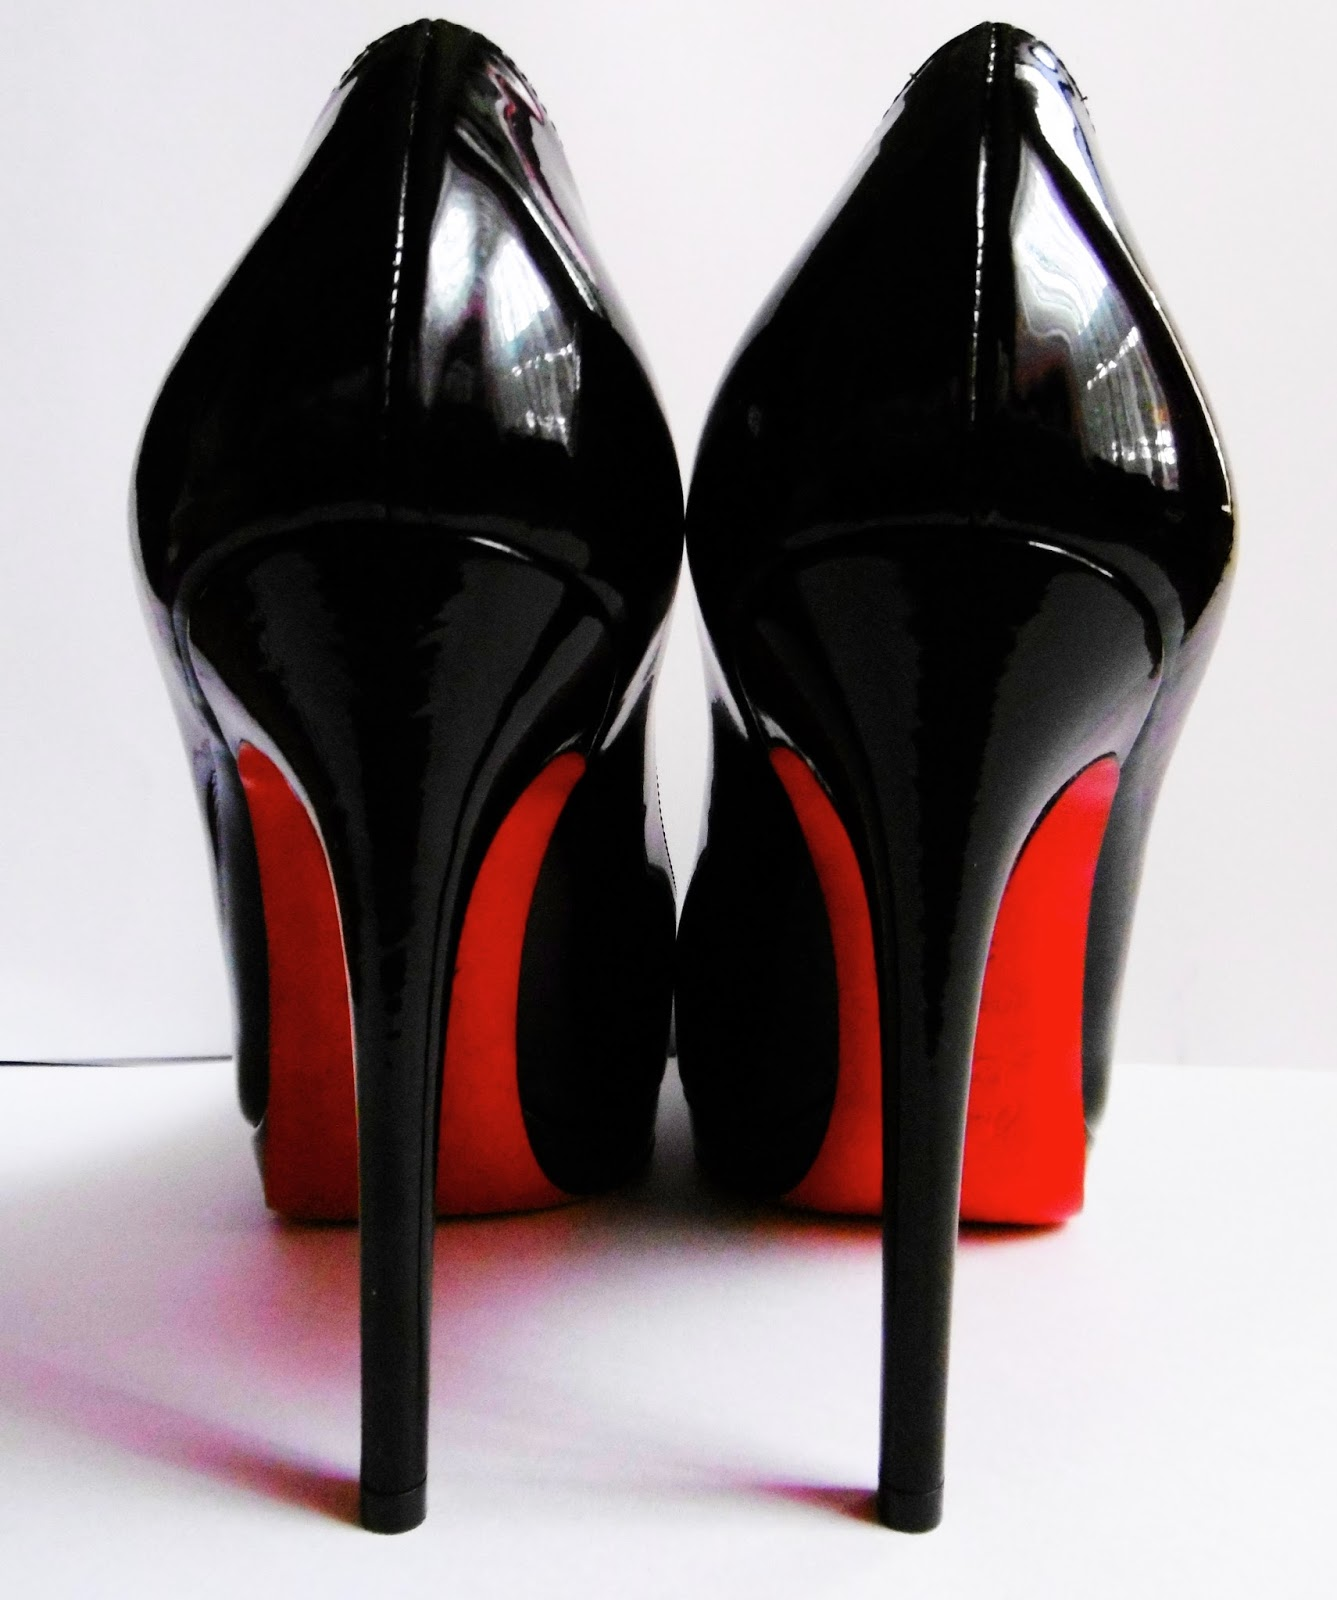 Red Sole Shoes Replica Uk